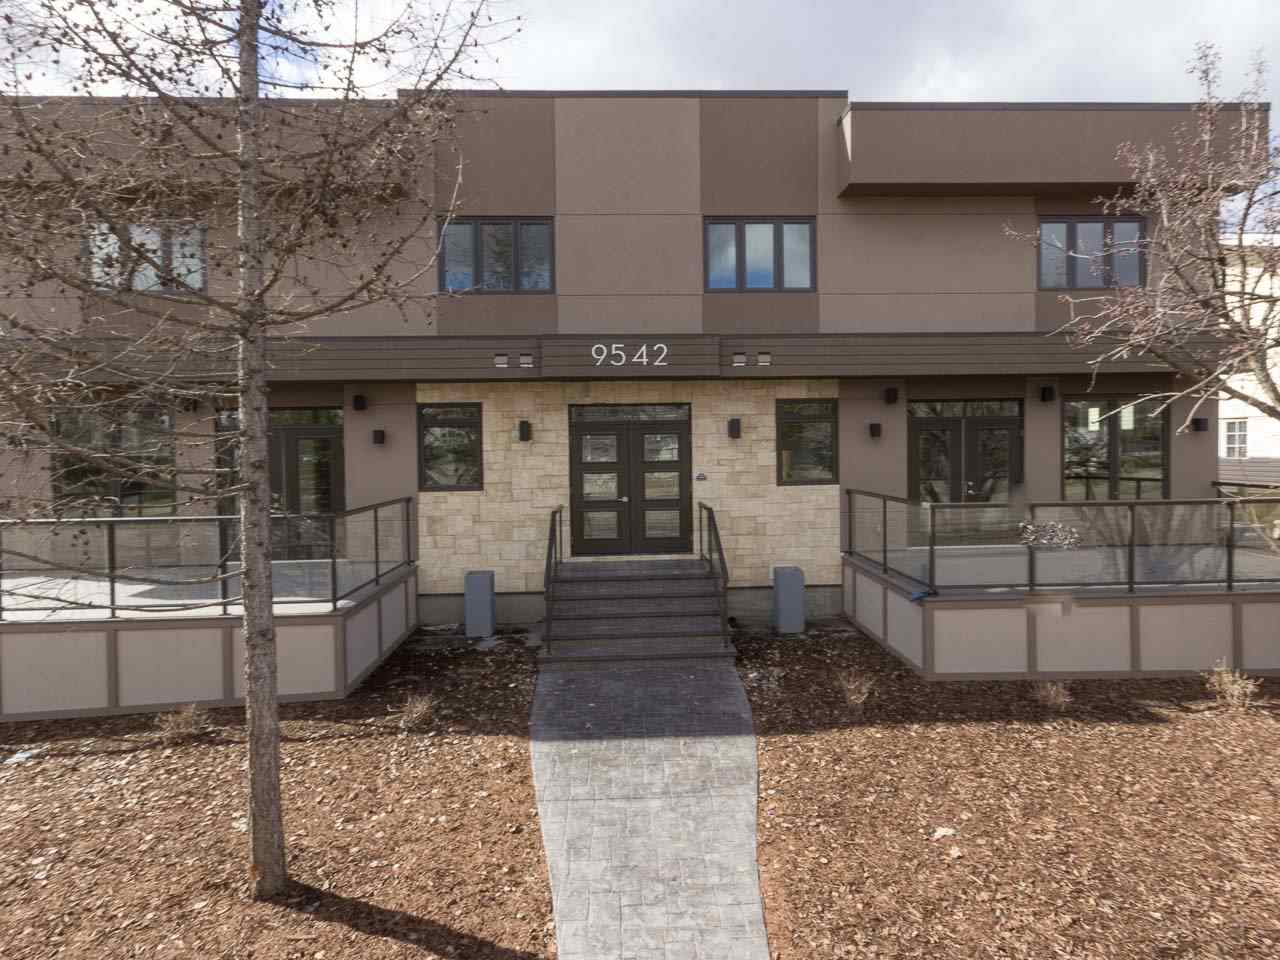 Main Photo: 3 9542 142 Street in Edmonton: Zone 10 Townhouse for sale : MLS® # E4058566